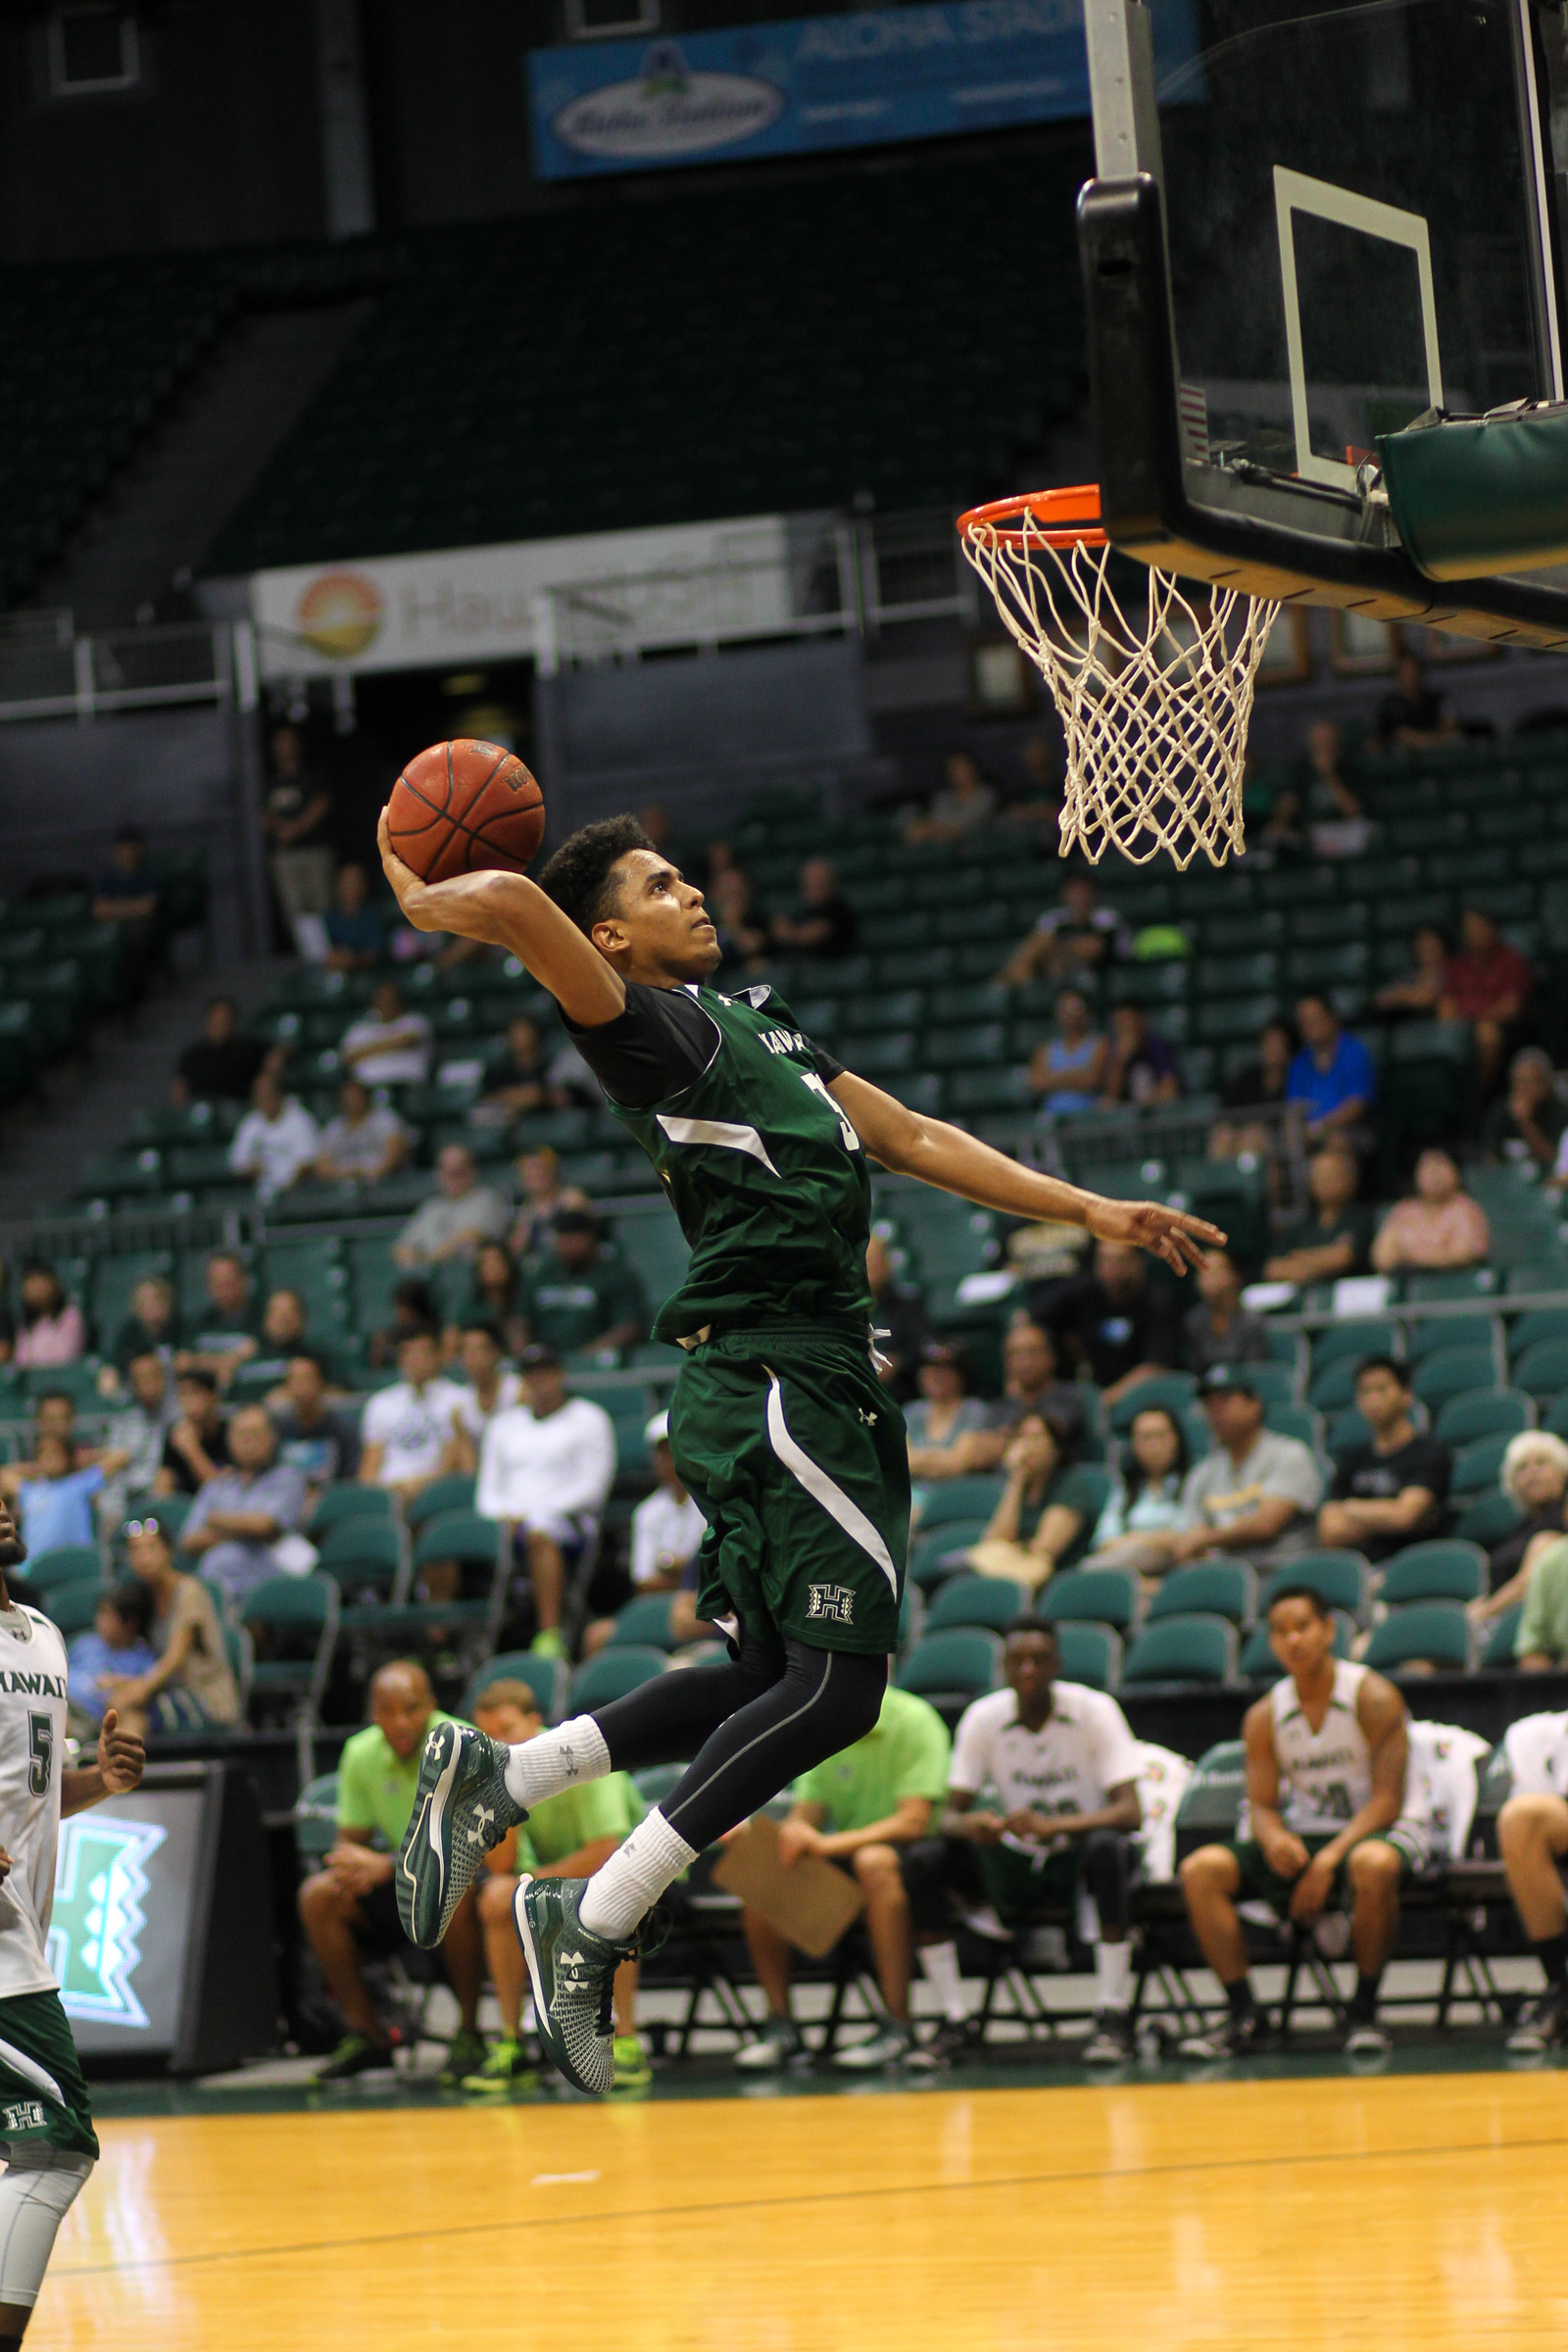 2015 UH Men's Basketball Green and White Scrimmage at the Stan Sheriff Center, Honolulu, HI on October 24 2015. Photo: Brandon Flores.